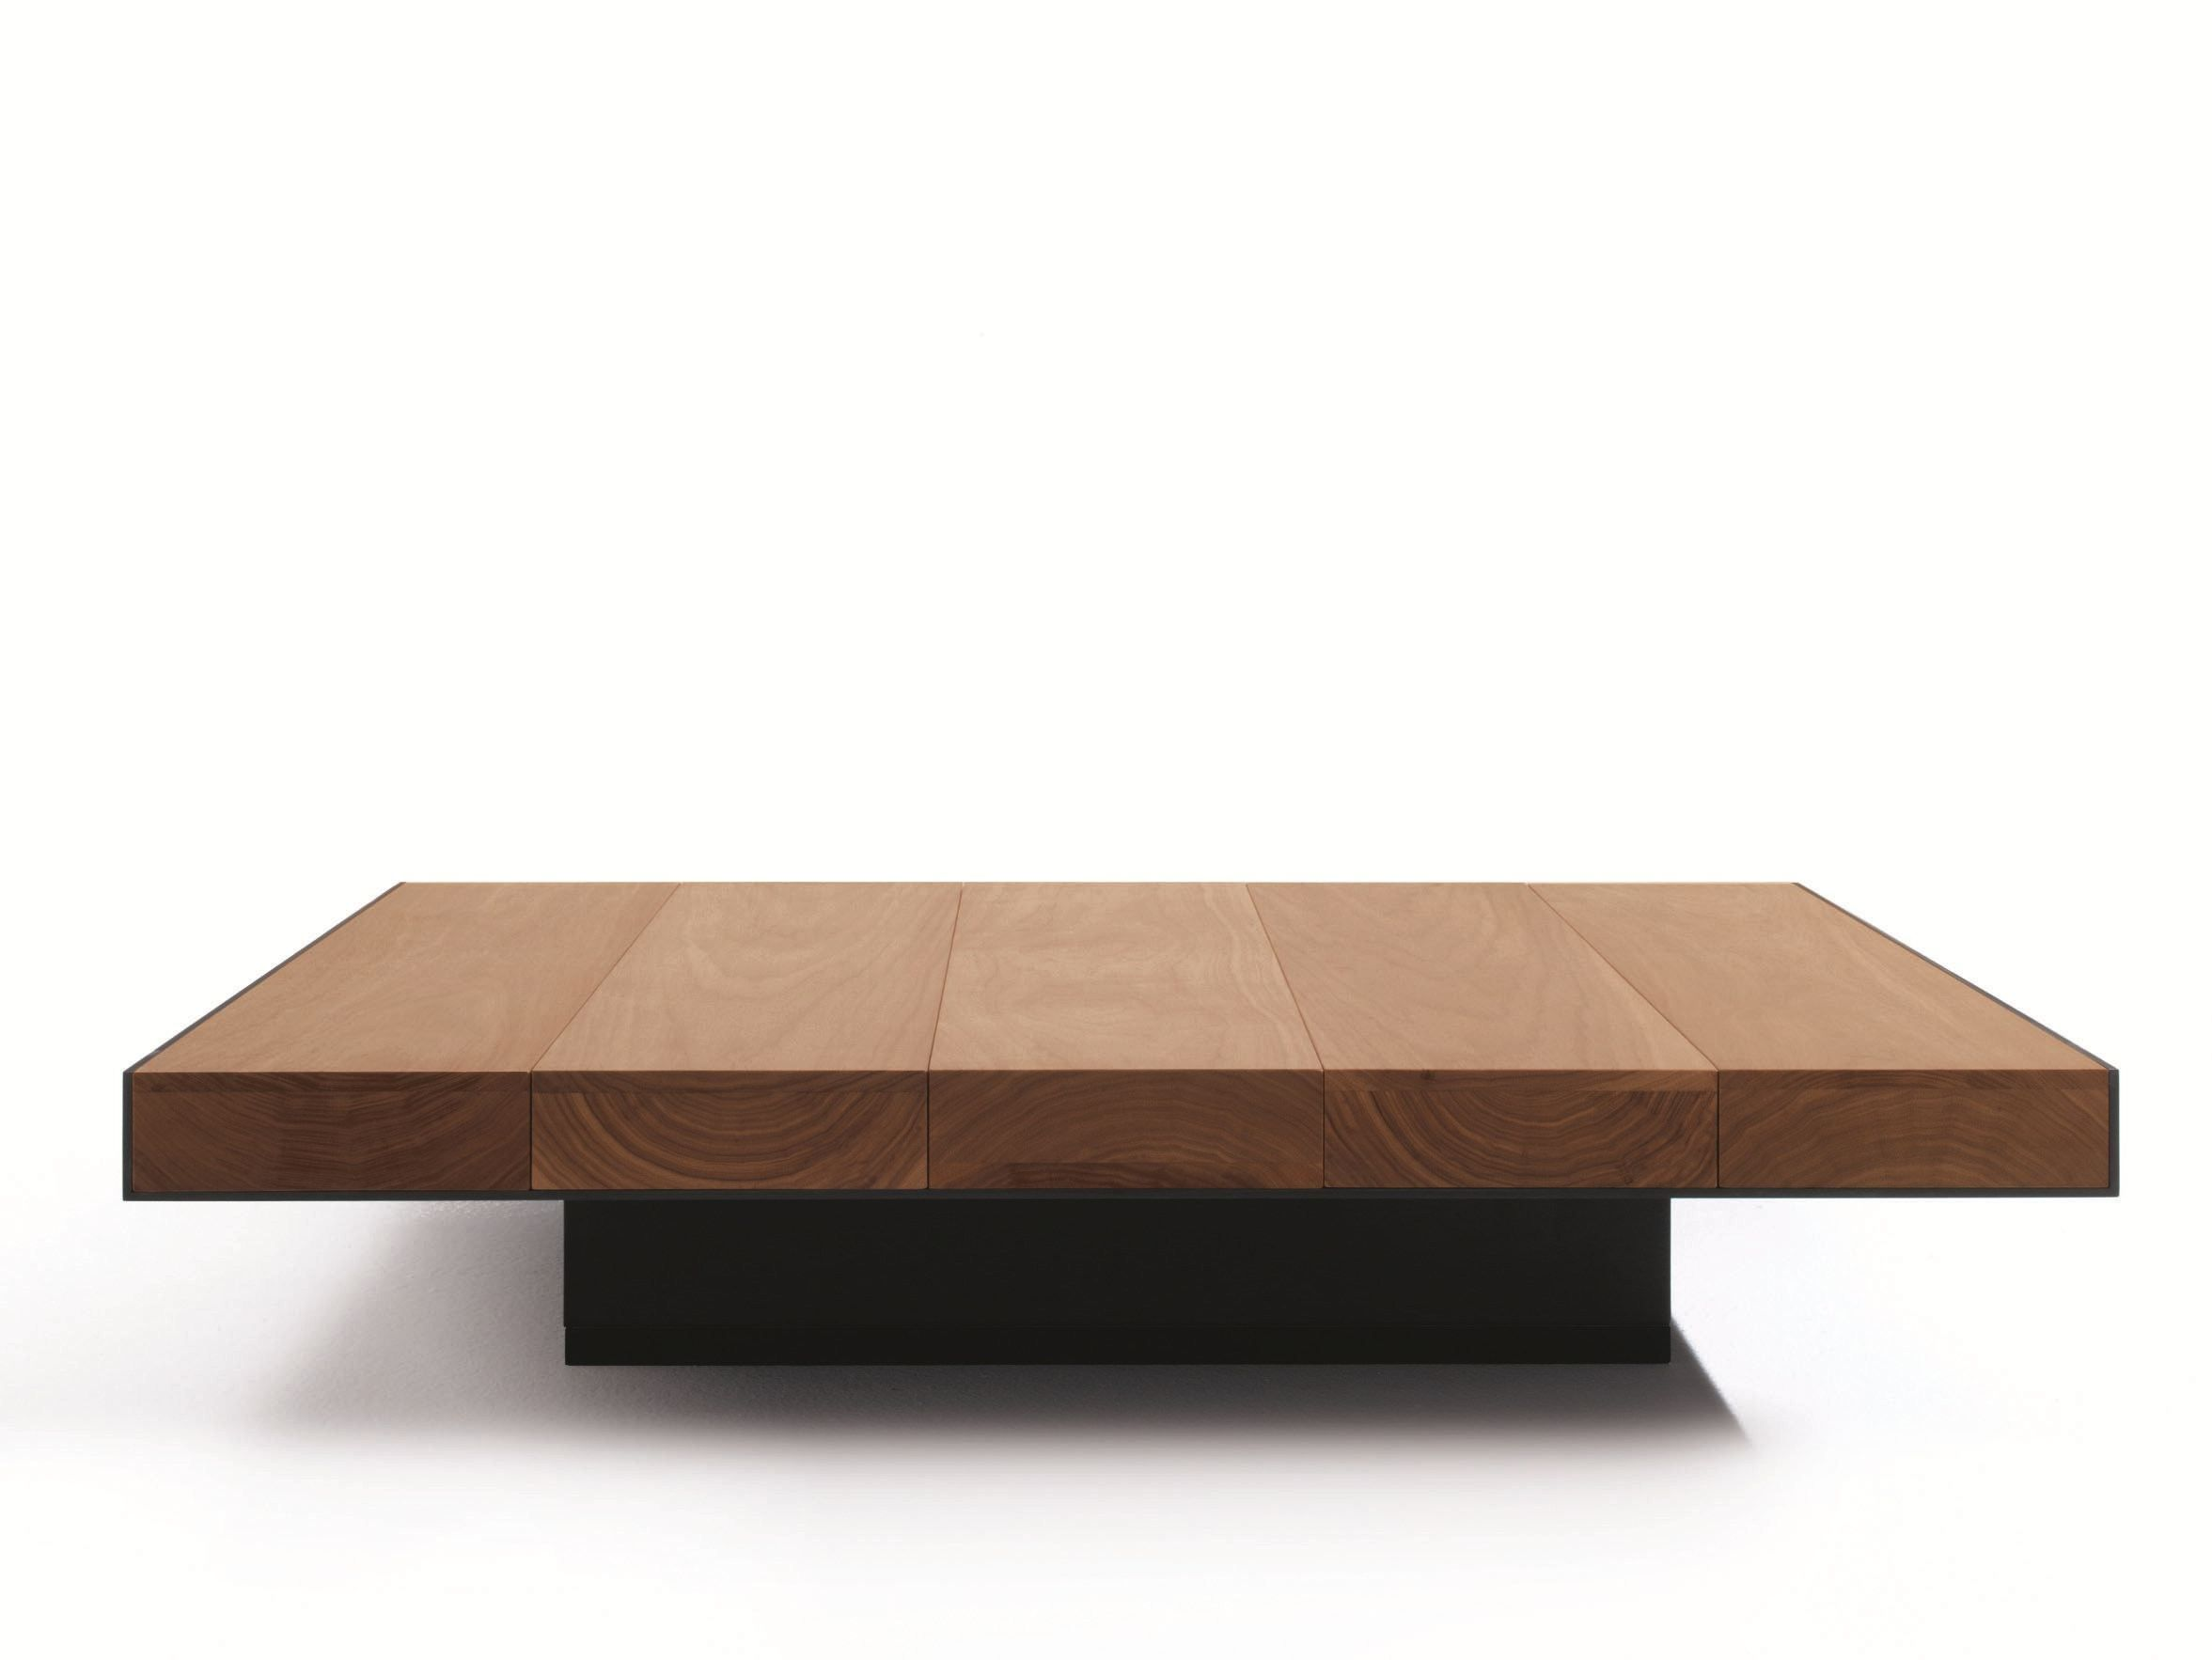 Low Square Solid Wood Coffee Table Deck By Lema Design Christophe